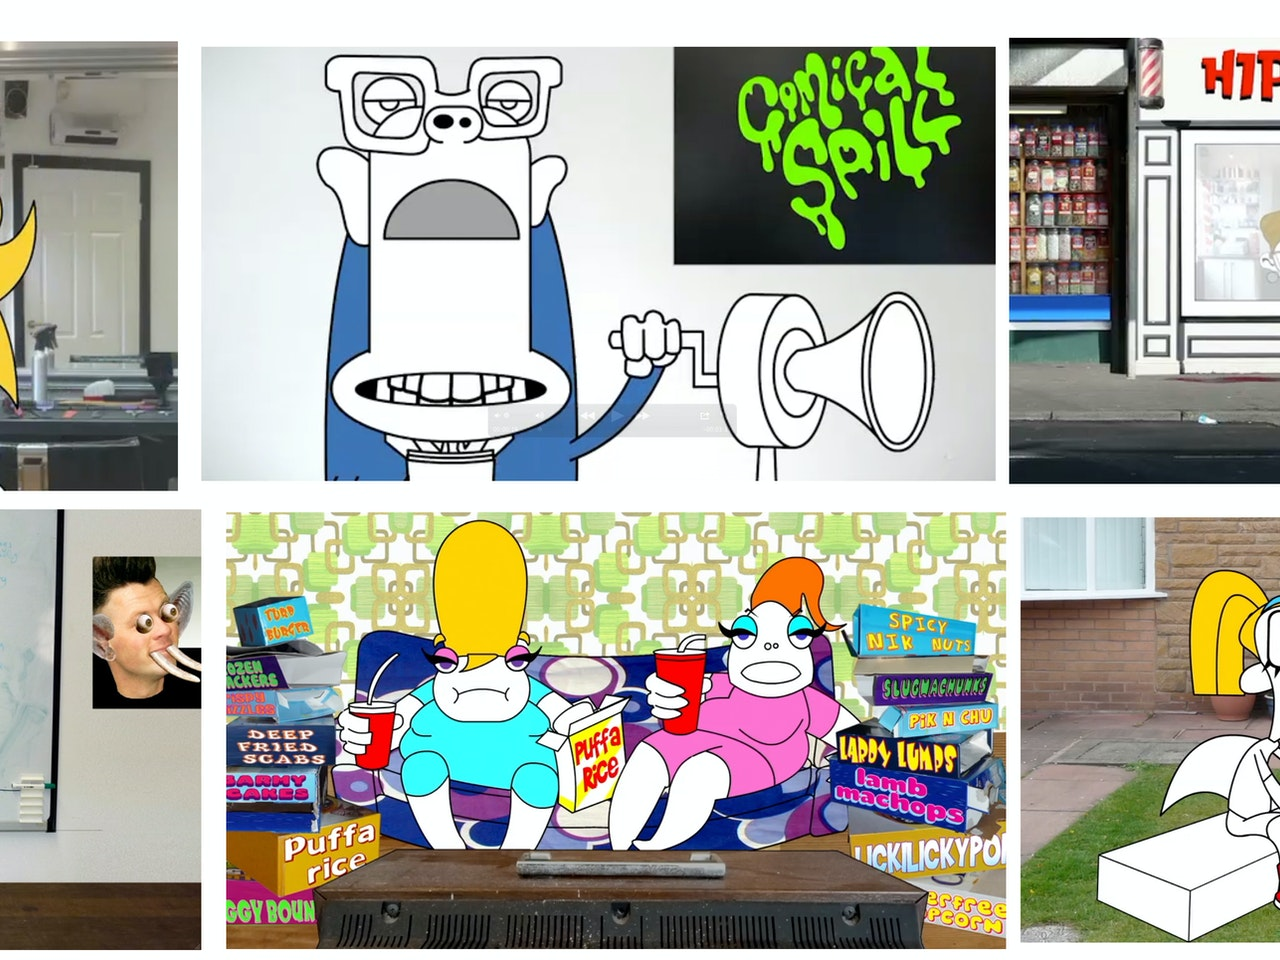 youtube  animation mobile website internet online game gaming   street art urban vinyl character hip hop photographic background  urban vinyl character browsing streaming social network profile  facebook  collage retro